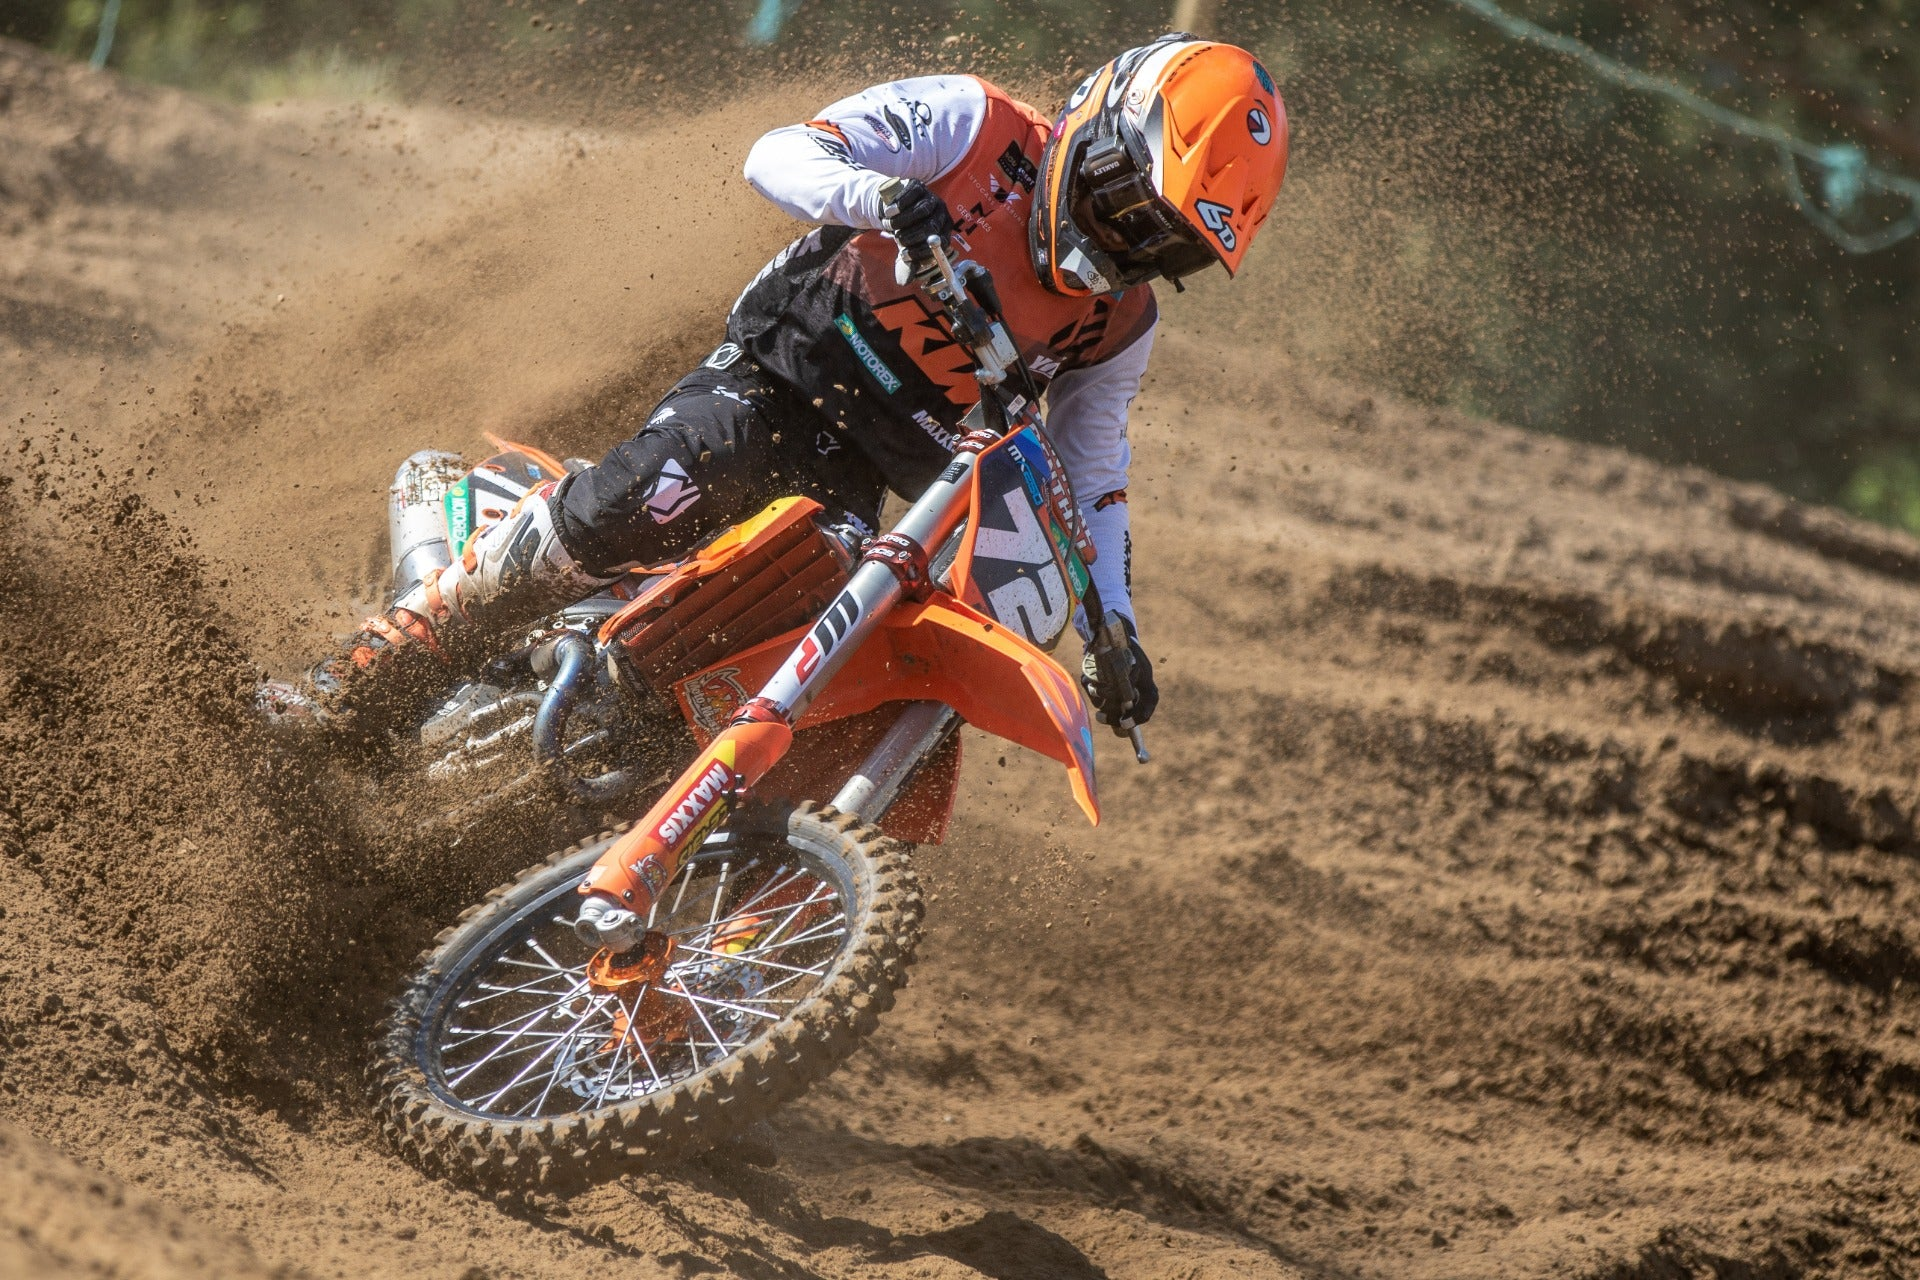 Liam Everts gets back on his bike after weeks of COVID-19 Lock-down!